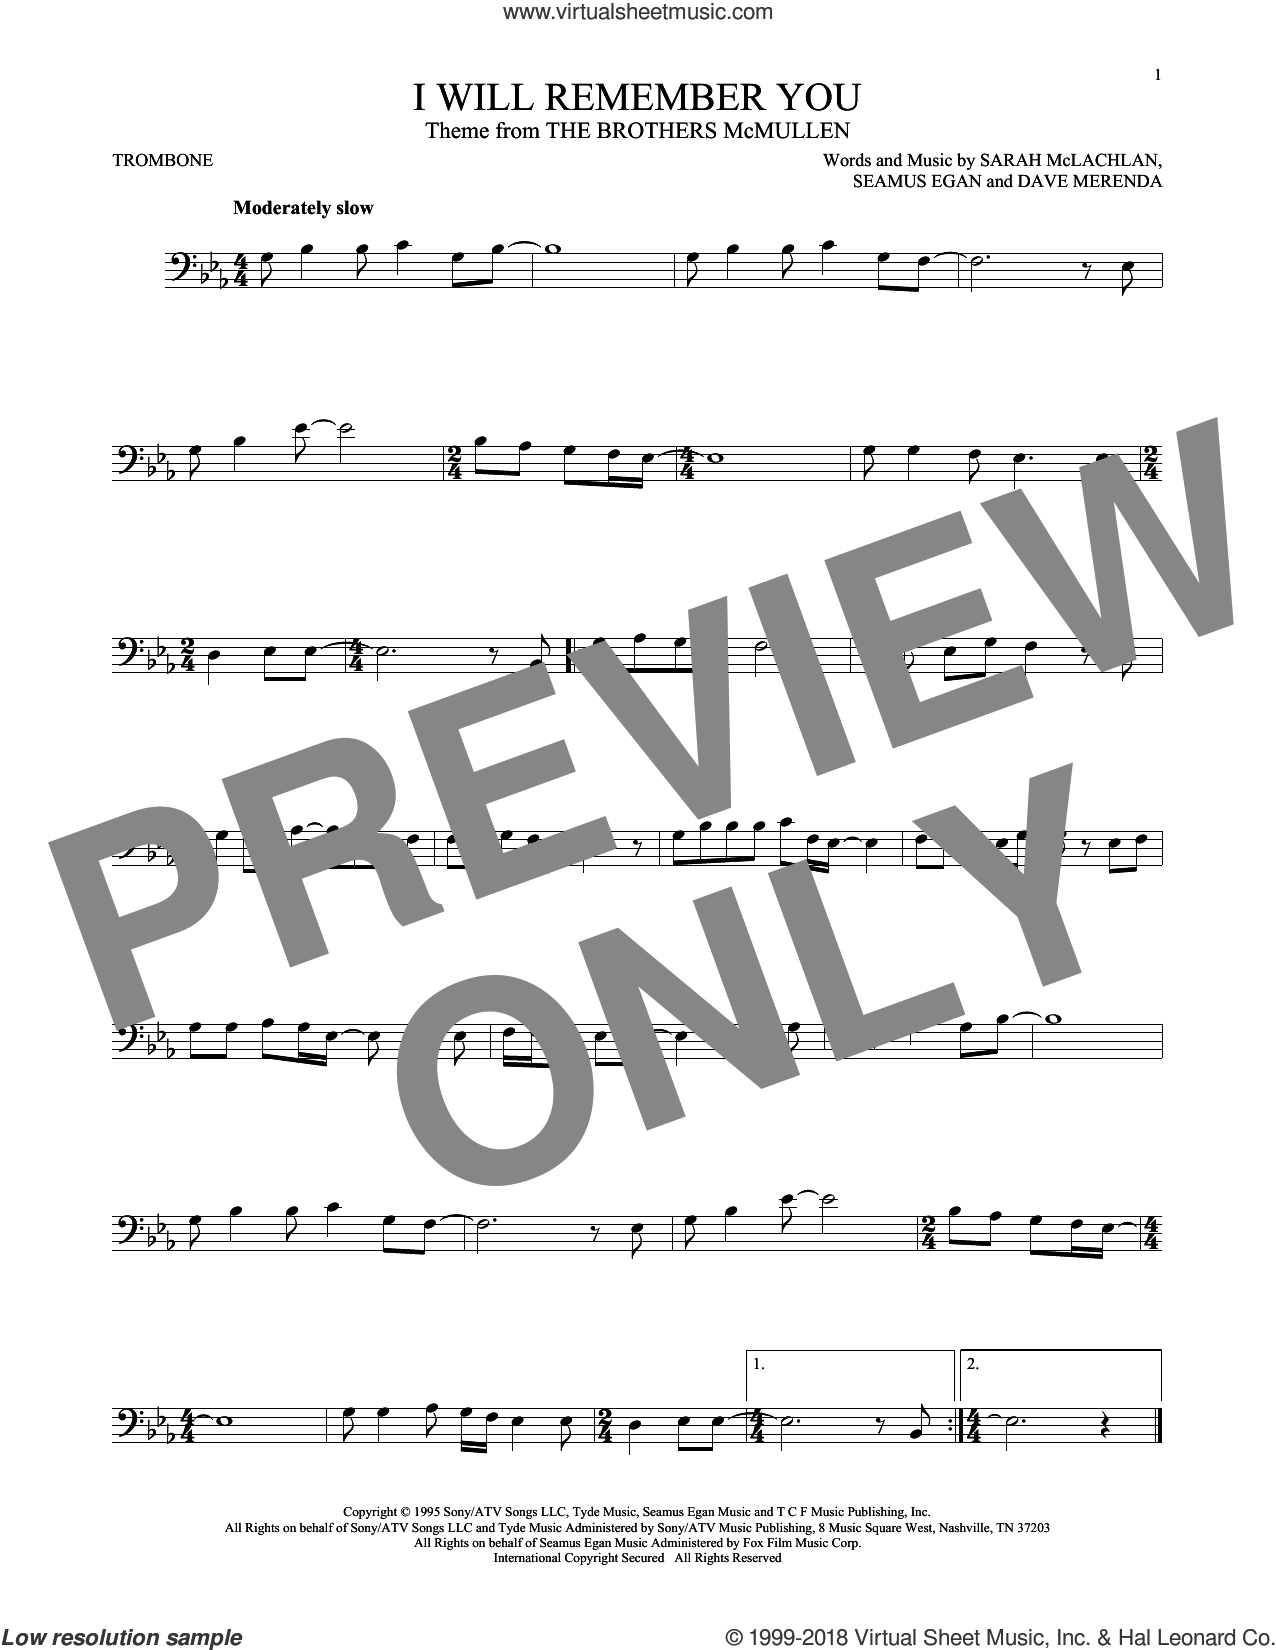 I Will Remember You sheet music for trombone solo by Seamus Egan and Sarah McLachlan. Score Image Preview.